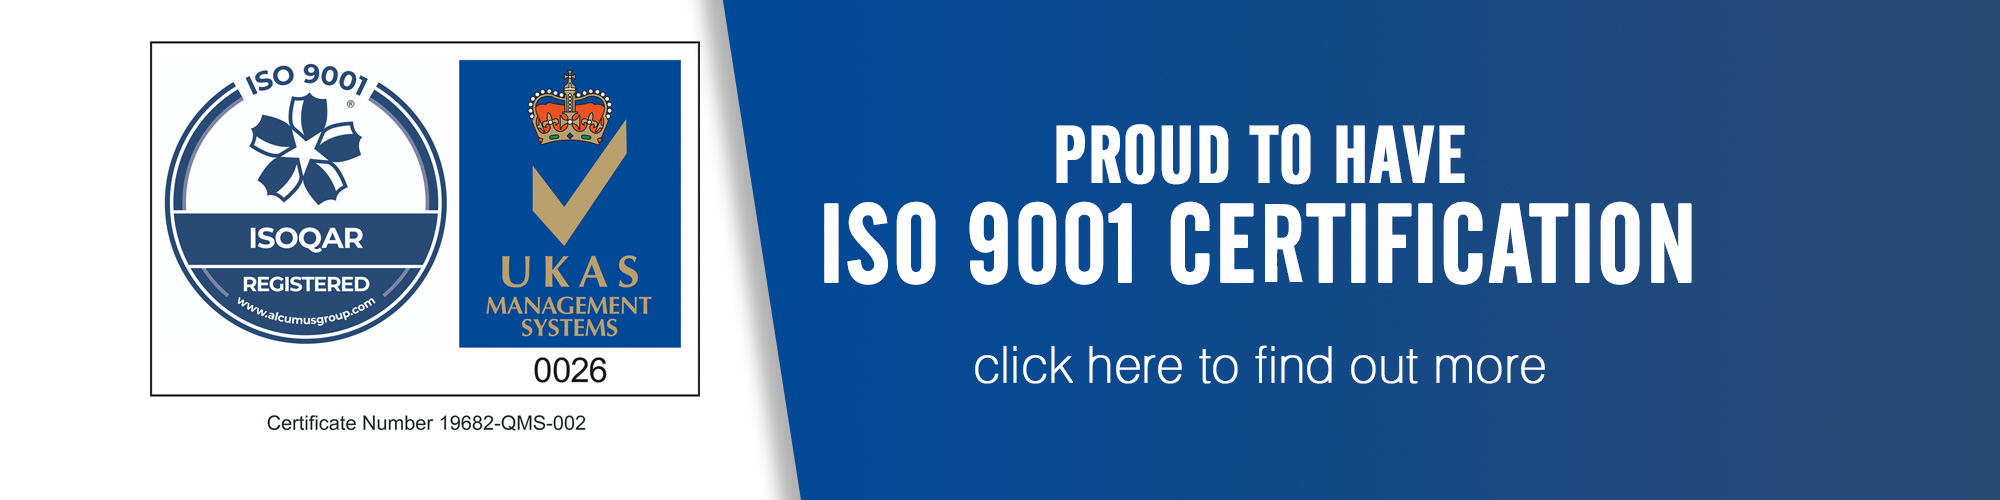 Victory Design - ISO 9001